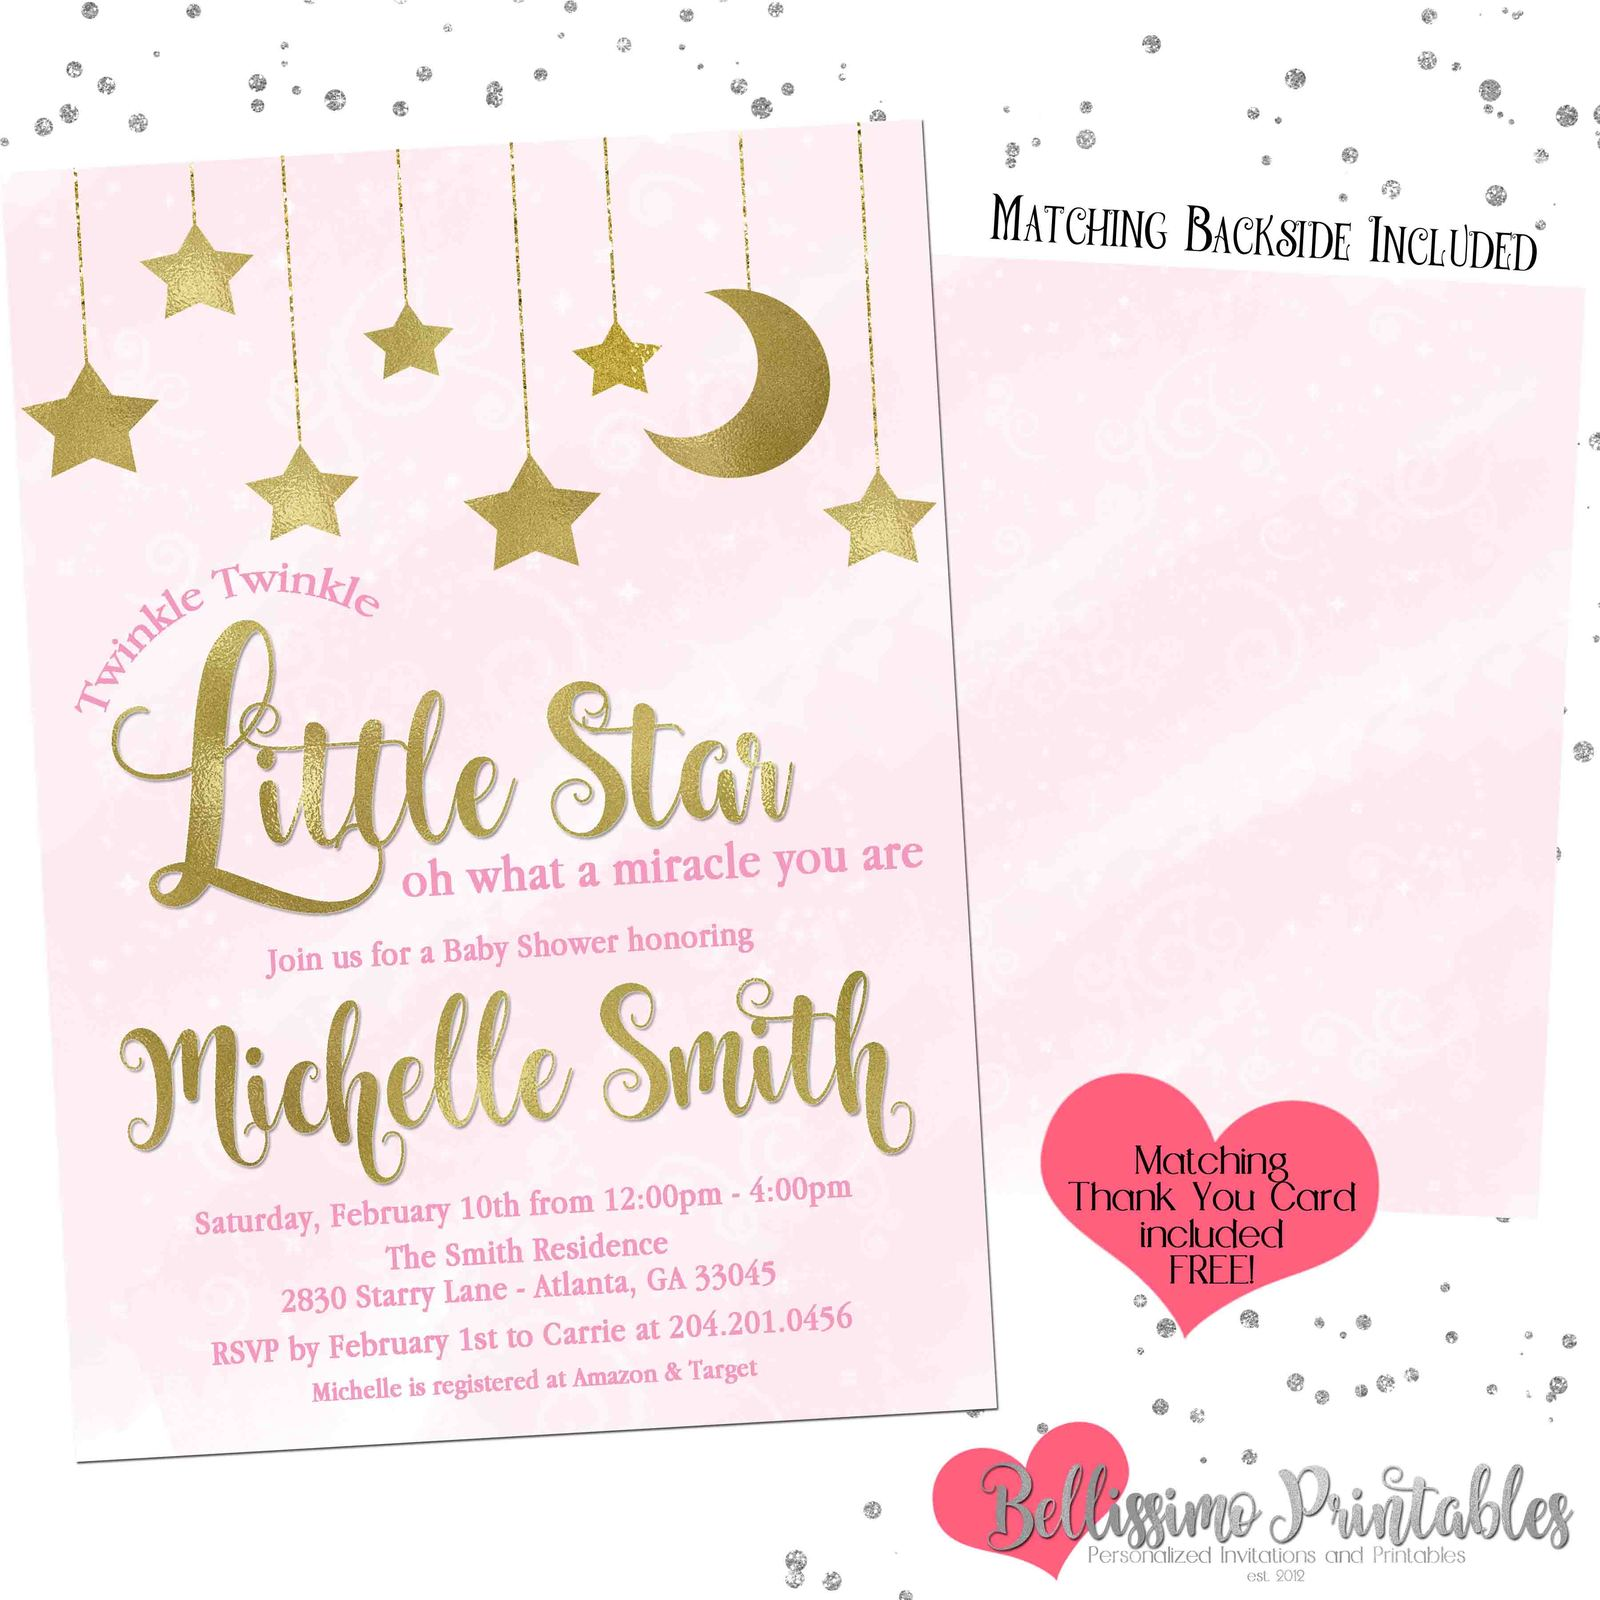 image regarding Free Printable Twinkle Twinkle Little Star Baby Shower Invitations named Twinkle Twinkle Minor Star Crimson Gold Child and 50 related merchandise